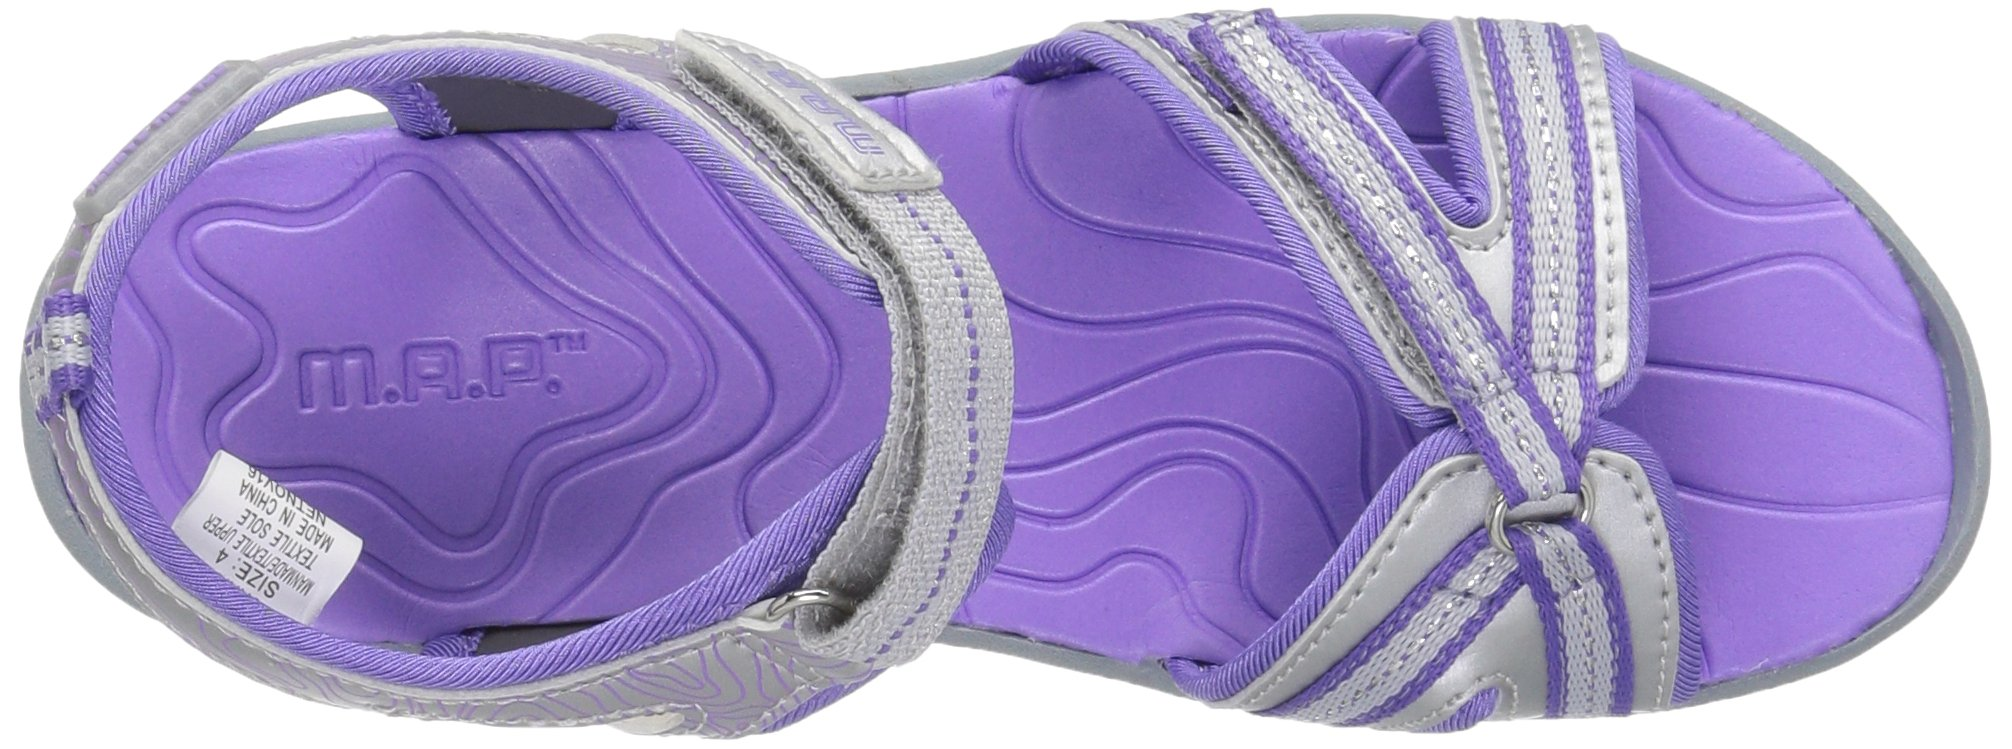 M.A.P. Lorna Girl's Outdoor Sandal, Silver/Purple, 2 M US Little Kid by M.A.P. (Image #8)